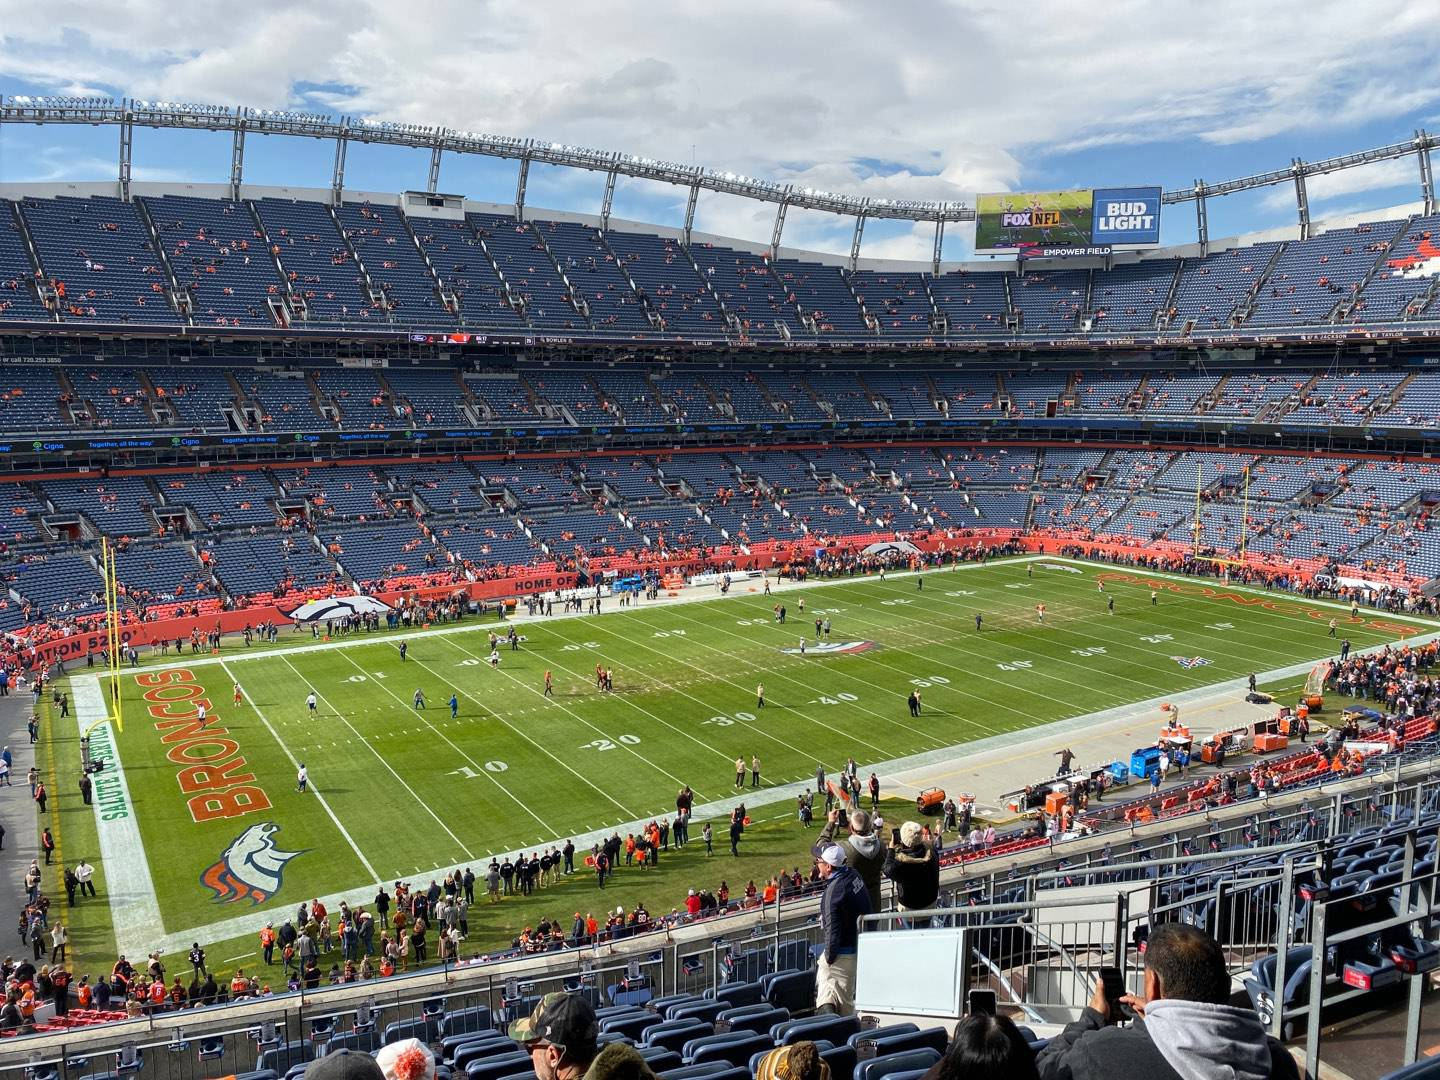 Empower Field at Mile High Stadium Section 343 Row 14 Seat 9